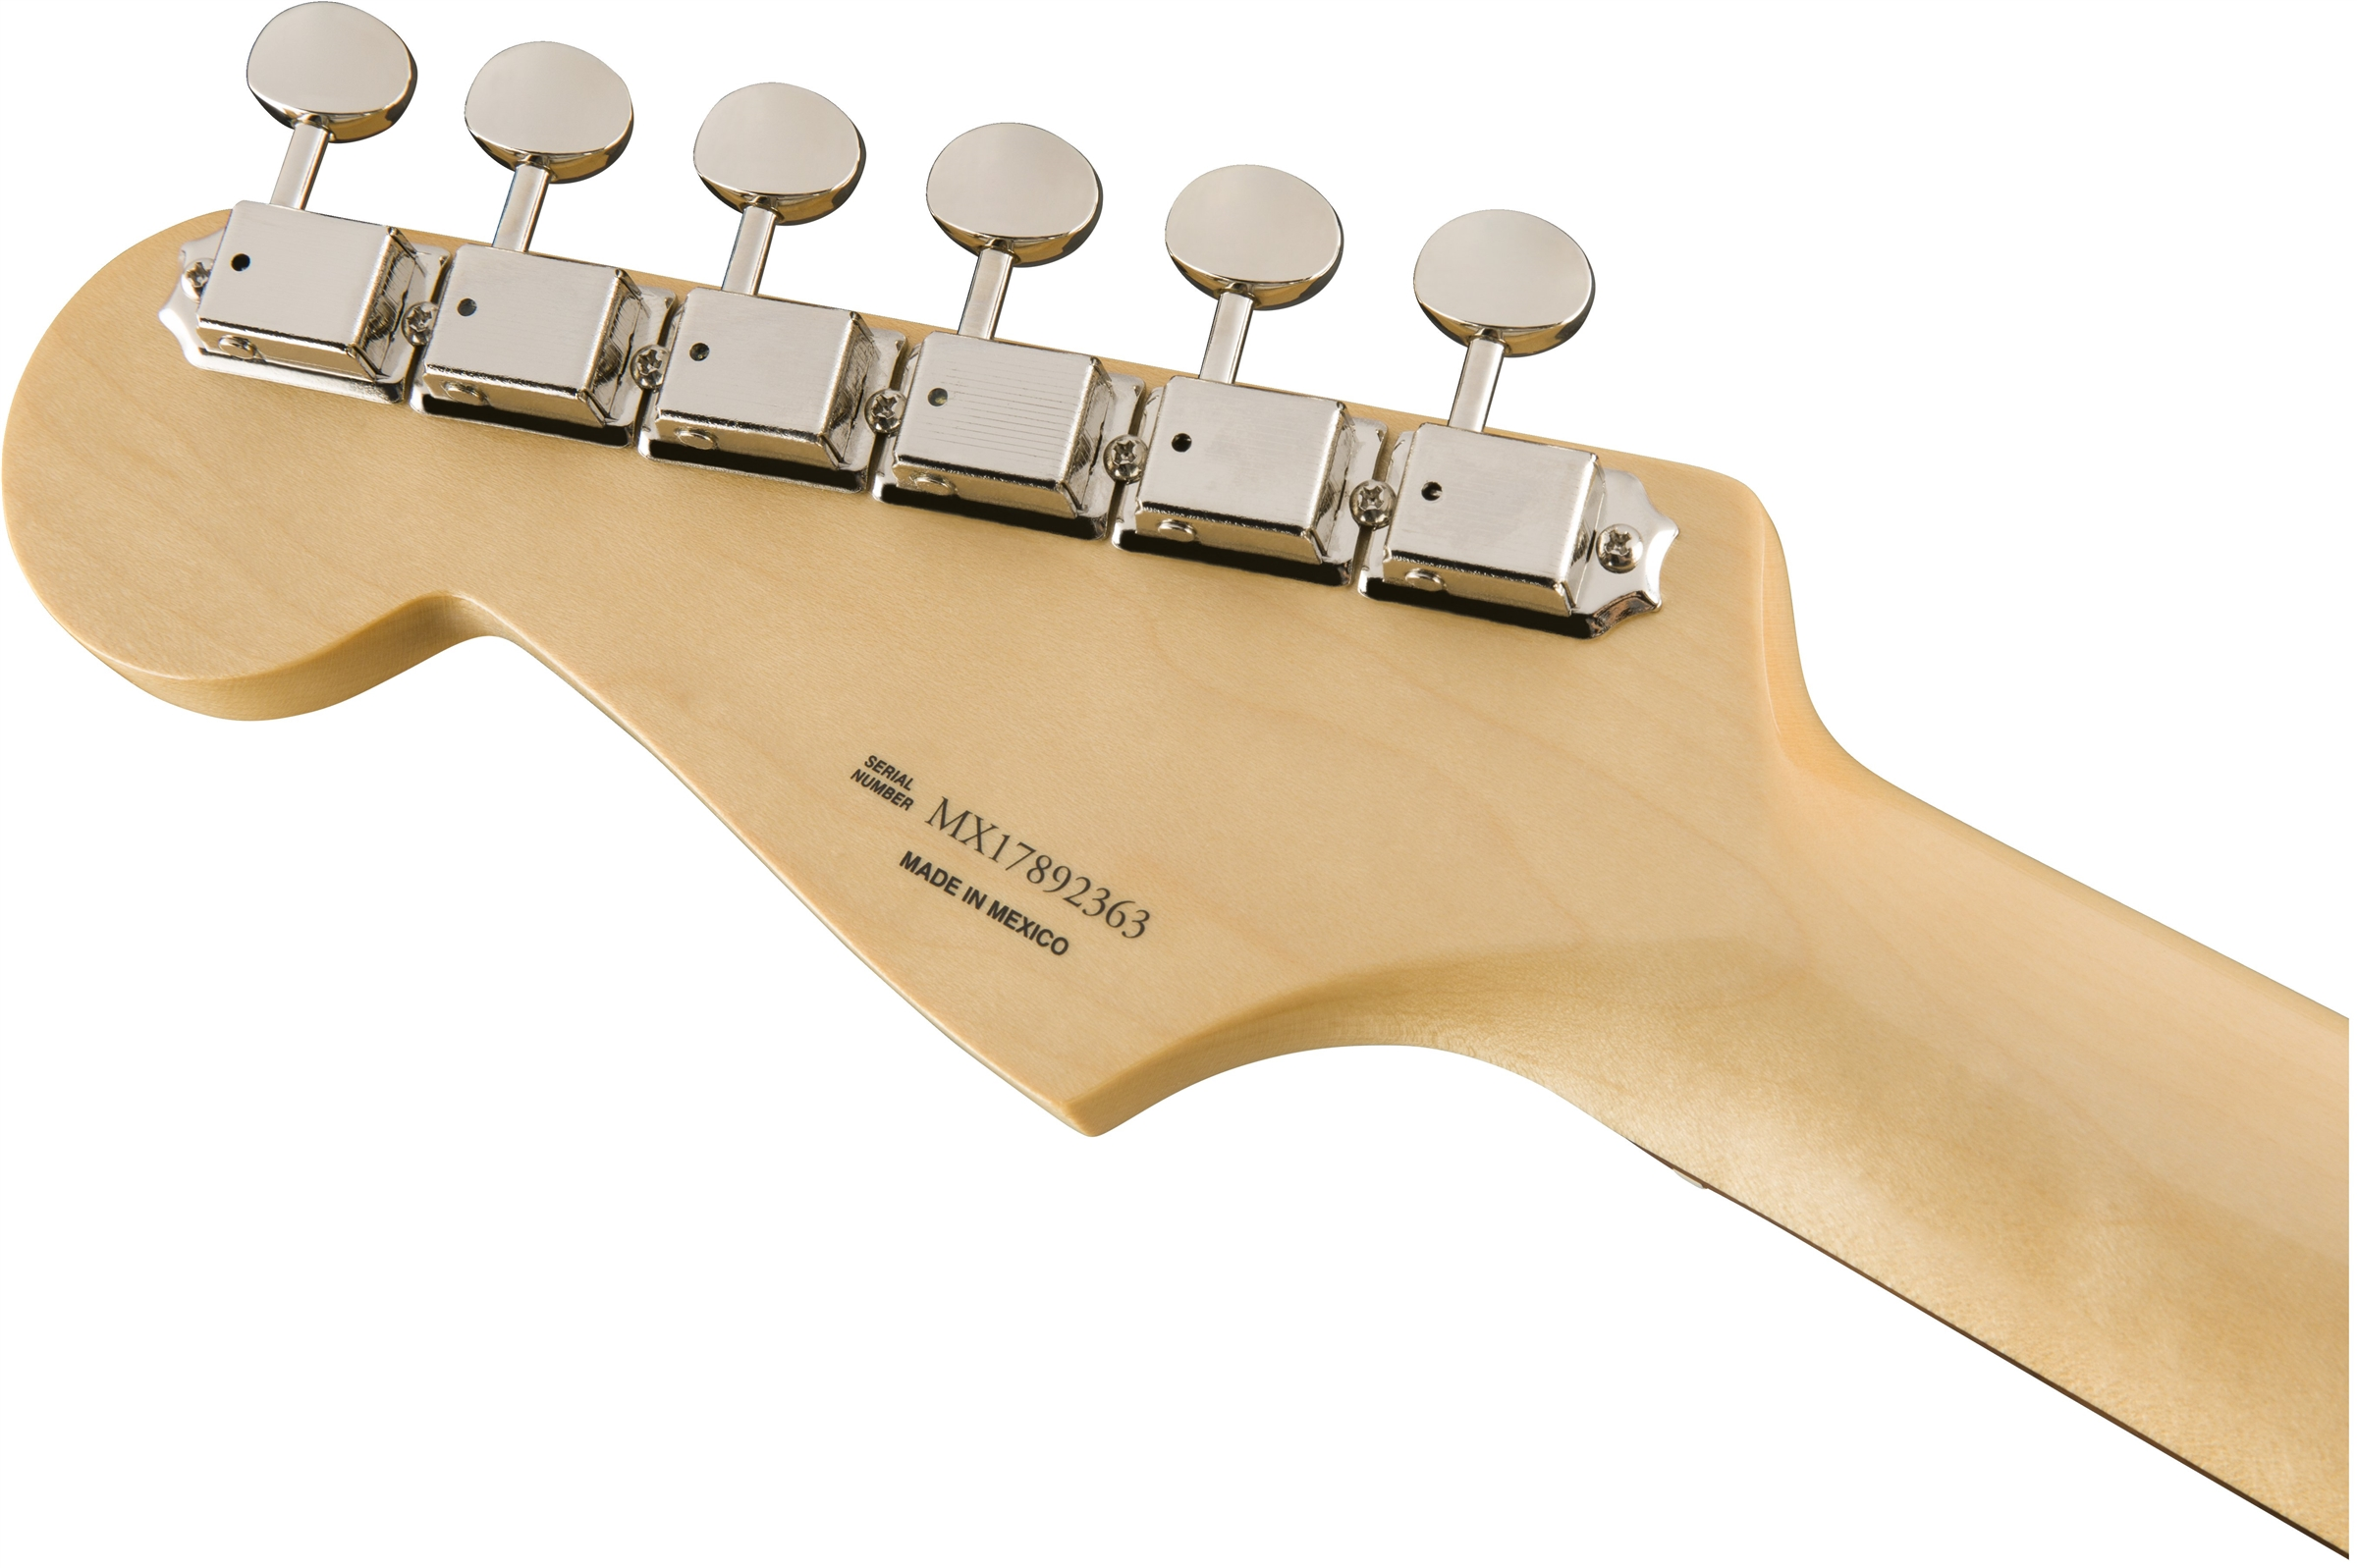 Classic Player 60s Stratocaster Electric Guitars Guitar String Diagram Notes Layout Of The Strings On Tap To Expand